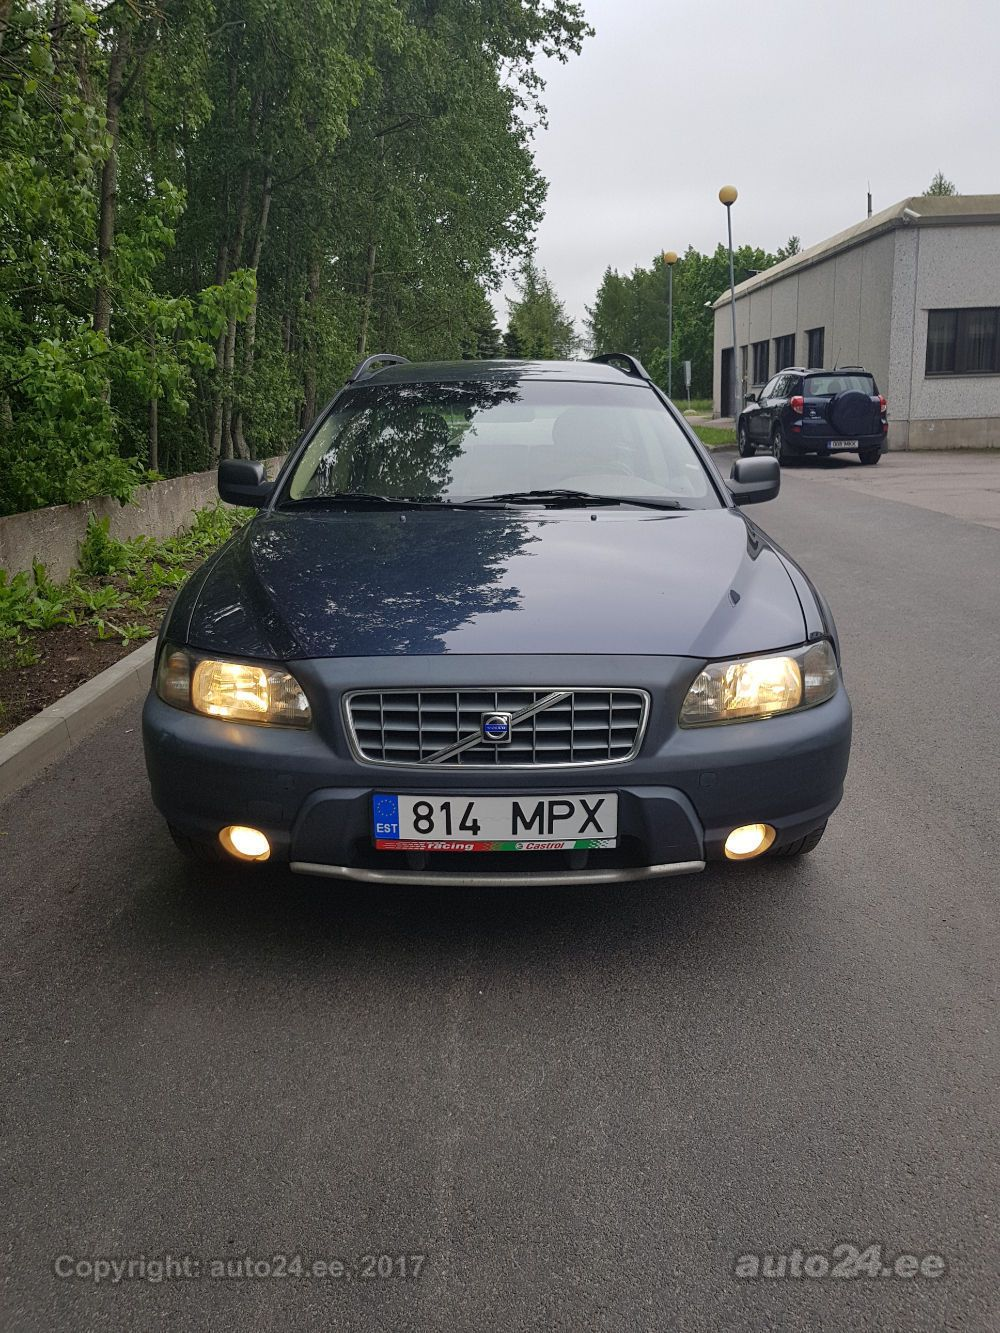 Volvo Xc70 Cross Country 24 120kw Auto24ee 2004